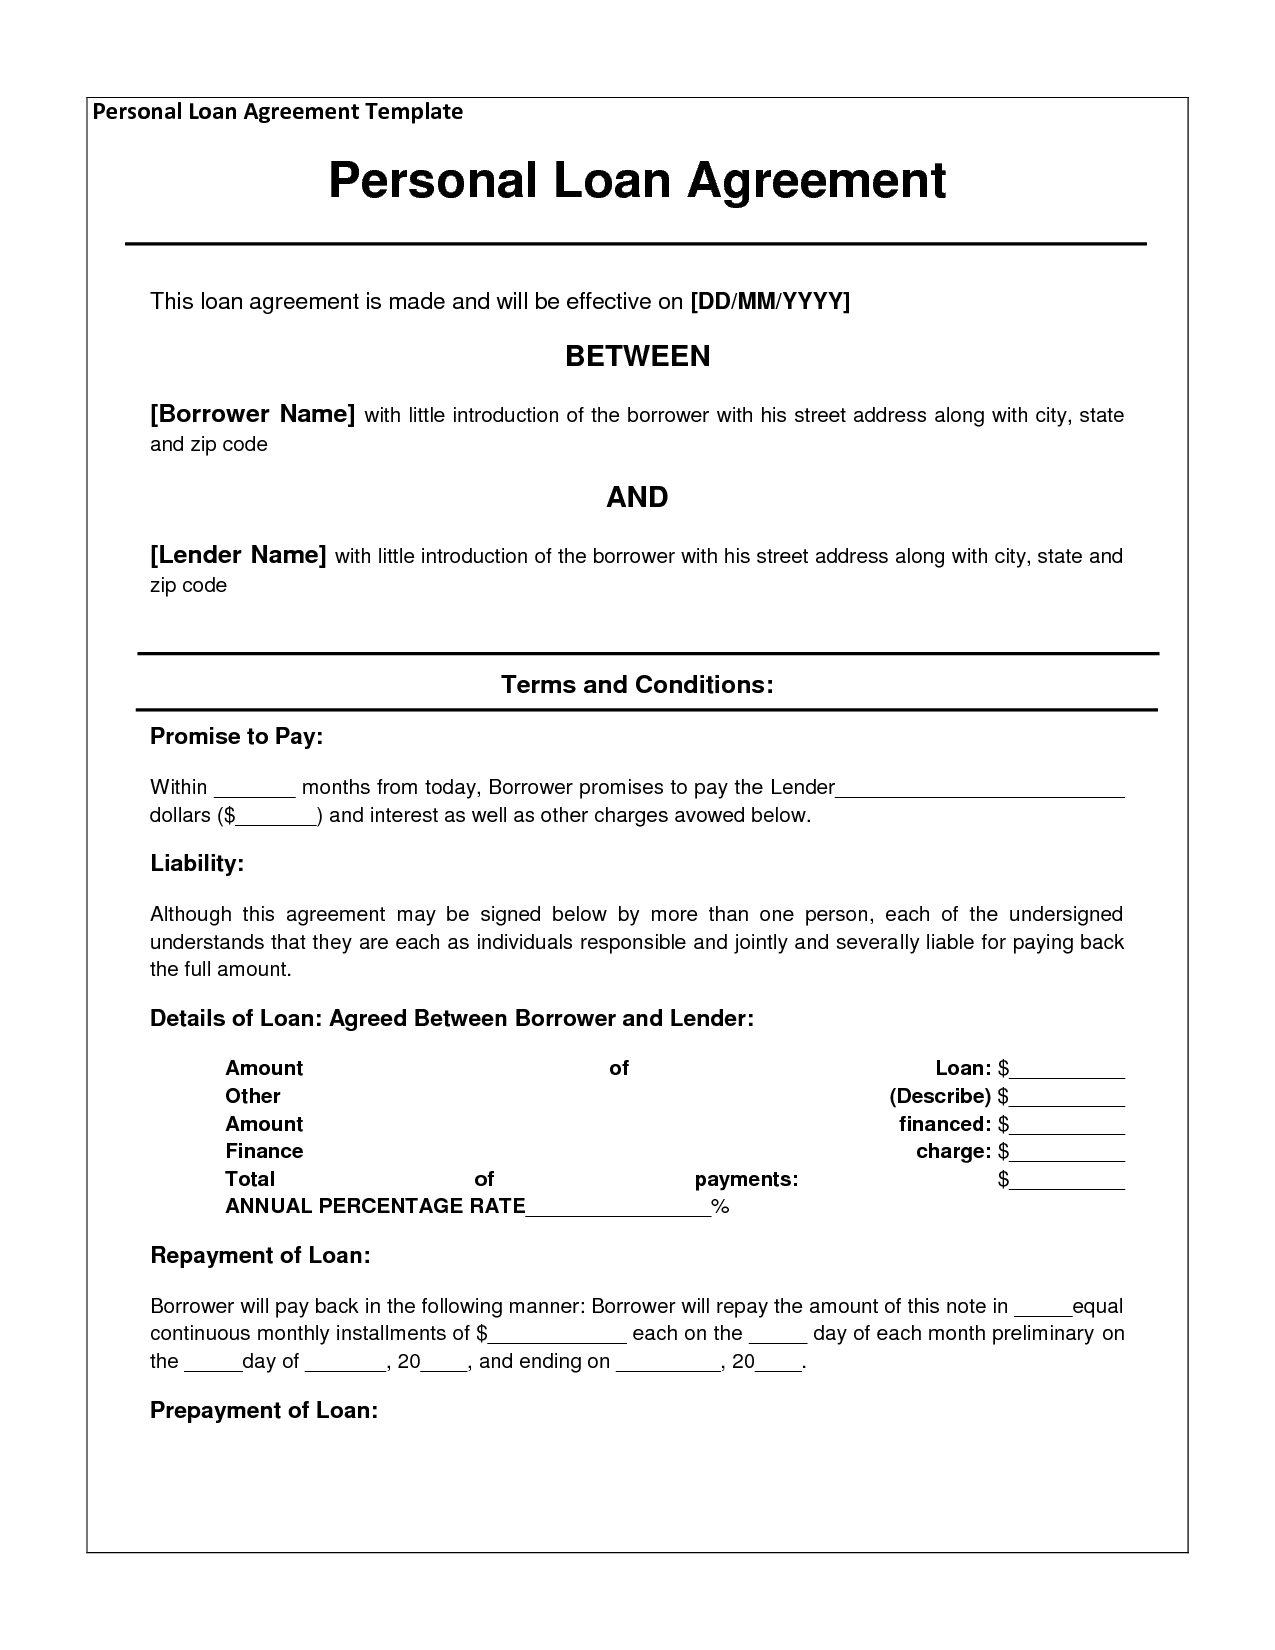 Free personal loan agreement form template 1000 Approved in 2 – Private Loan Agreement Template